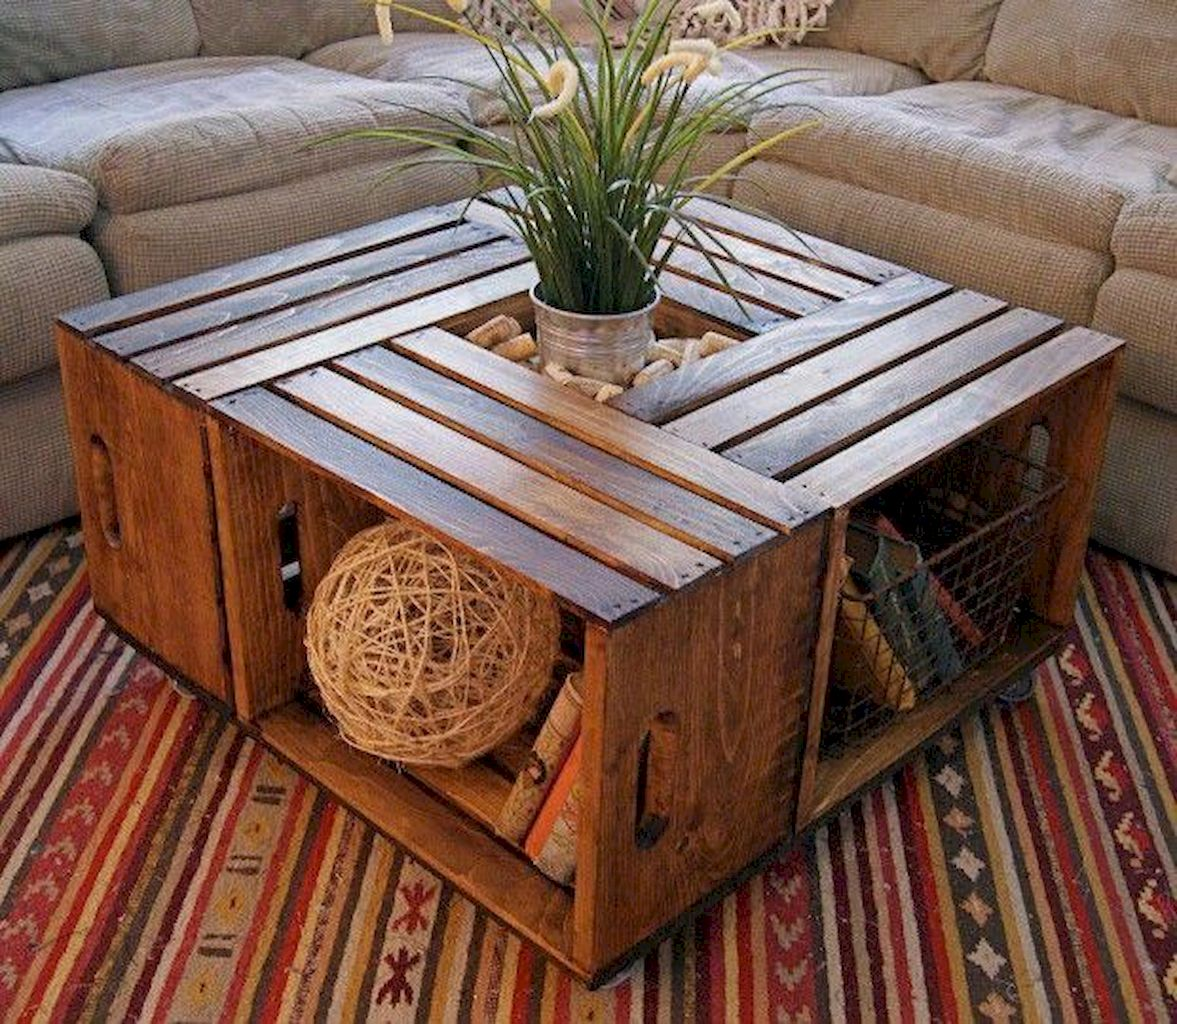 50 DIY Projects with Wood Pallets